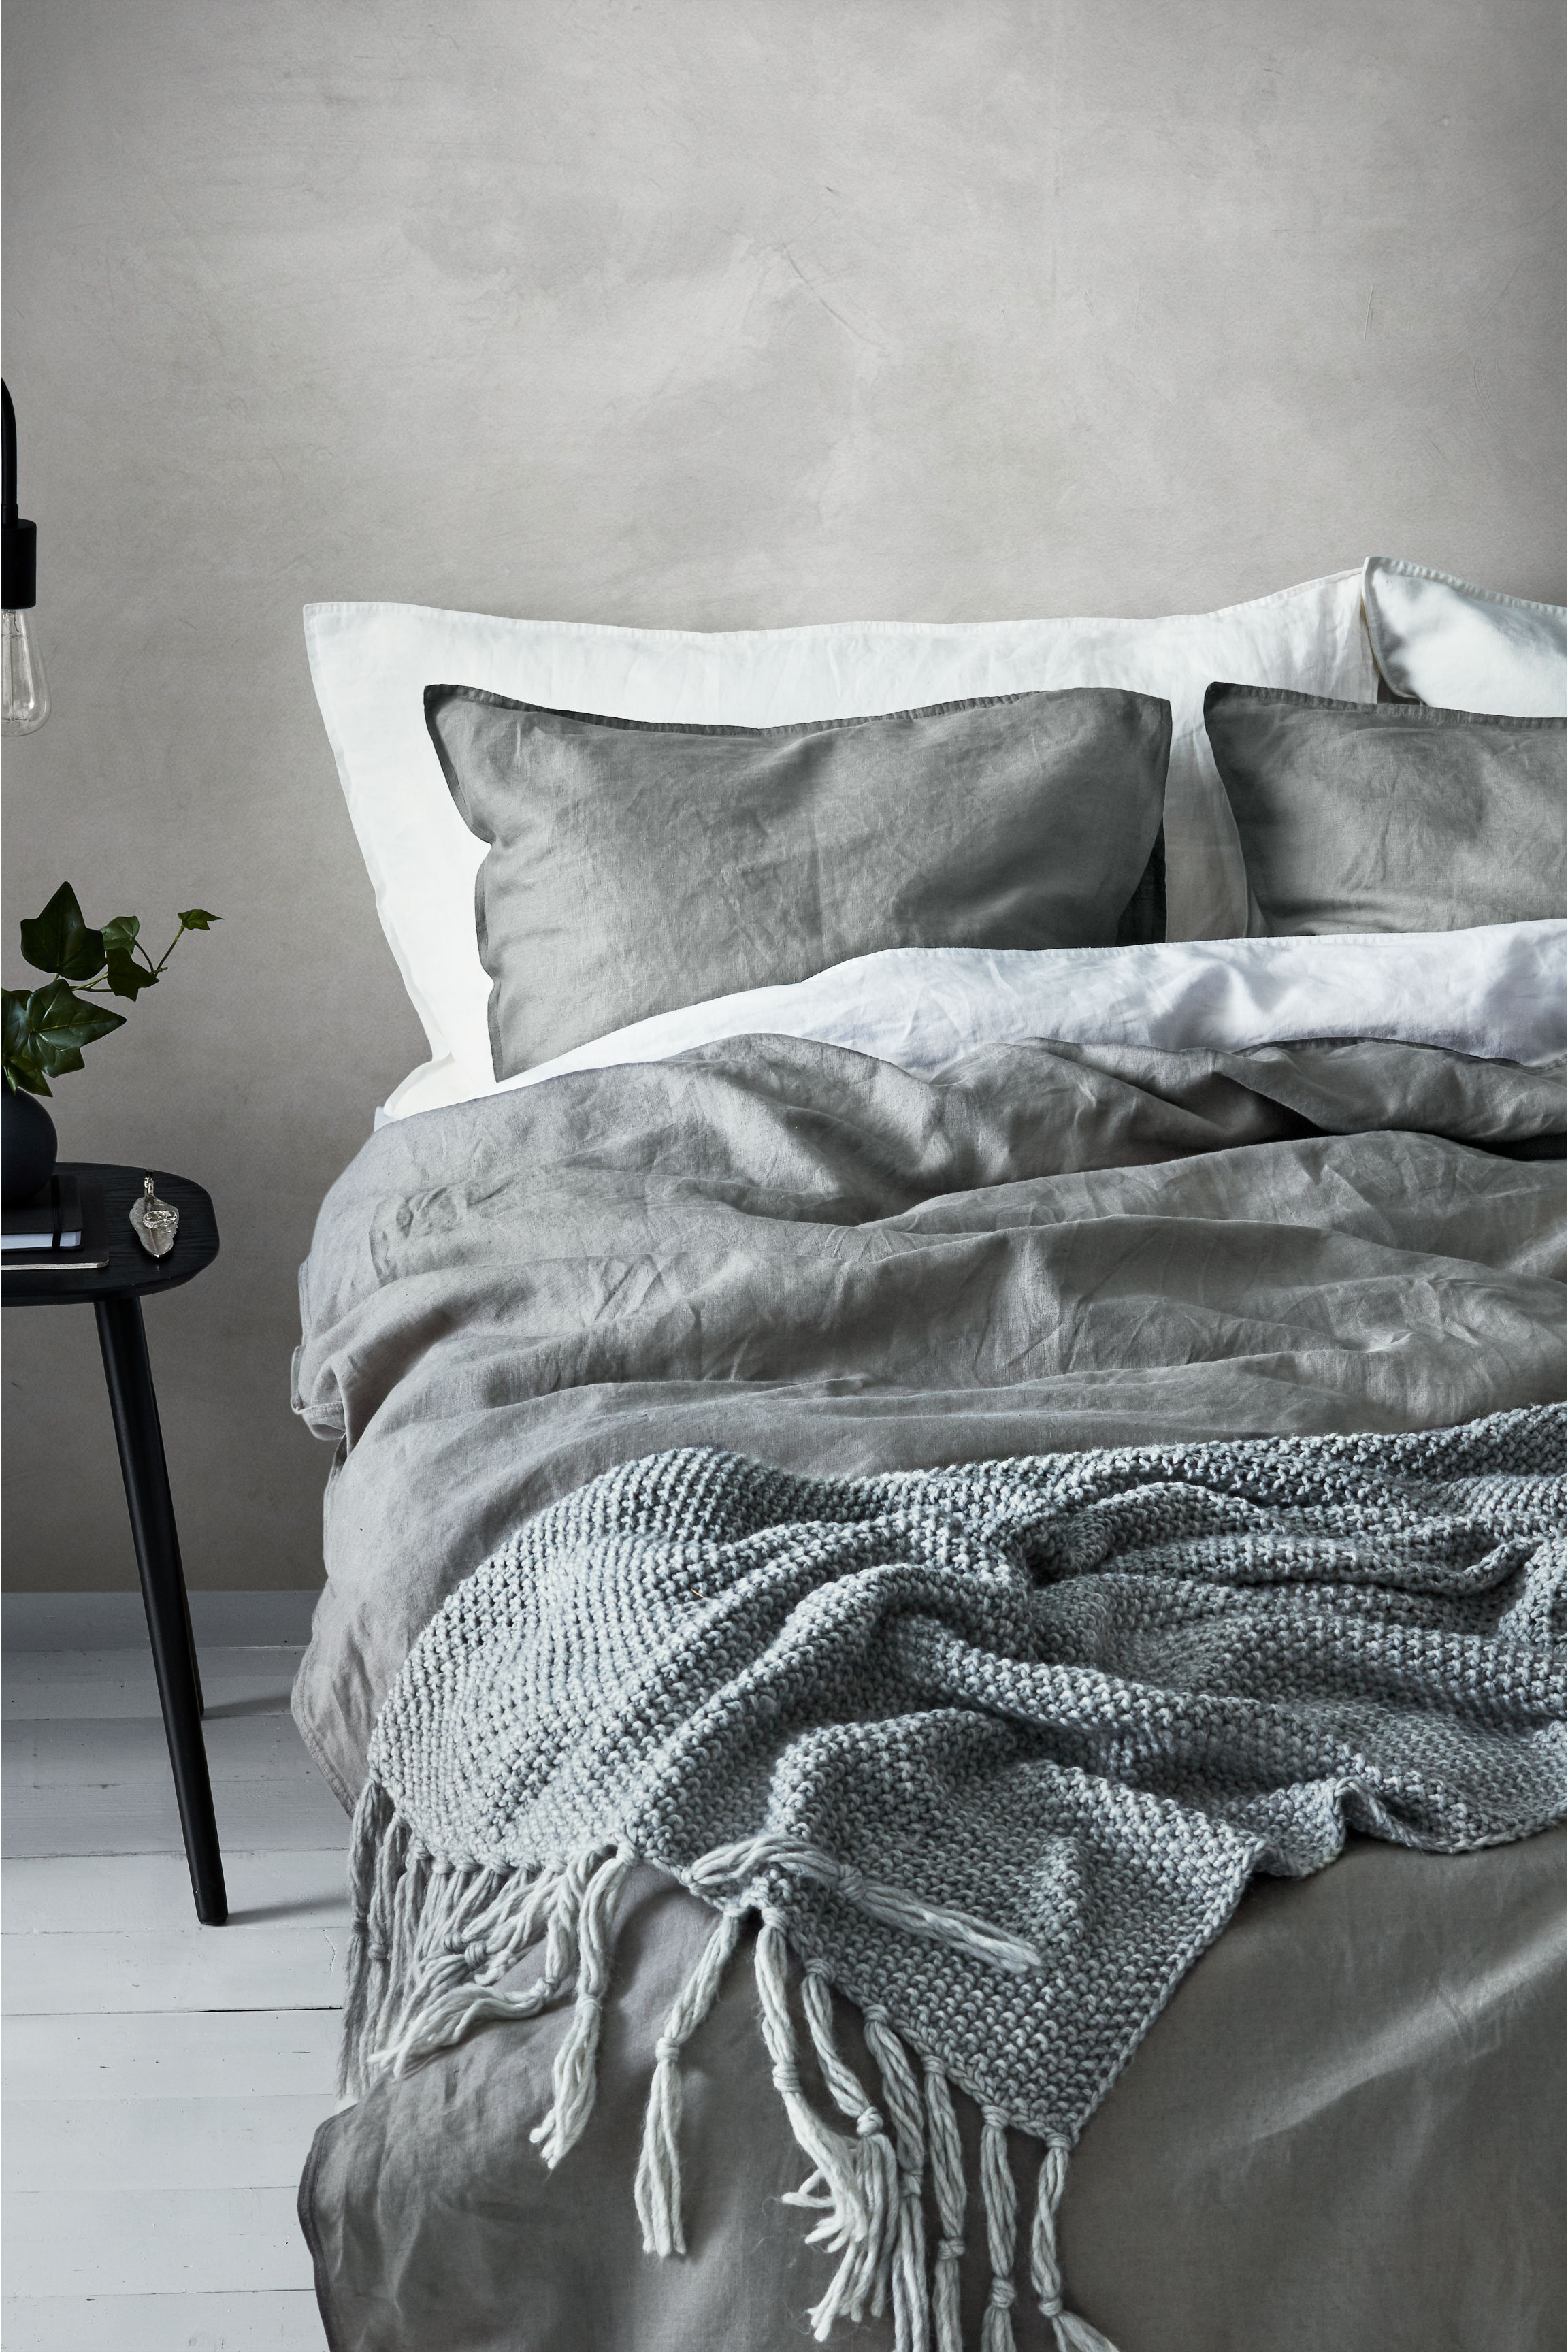 H&M Home - H&M Home's selection of linen bed linen is amazing value and a wonderful way of embracing the trend if you're on a bit more of a budget. The linen is washed for softness with double-stitched edging on all seams and a thread count of 104. The range is available in a variety of sizes and colours, including classic white, dusky green and different shades of grey. Prices start at £59.99.www.hm.com